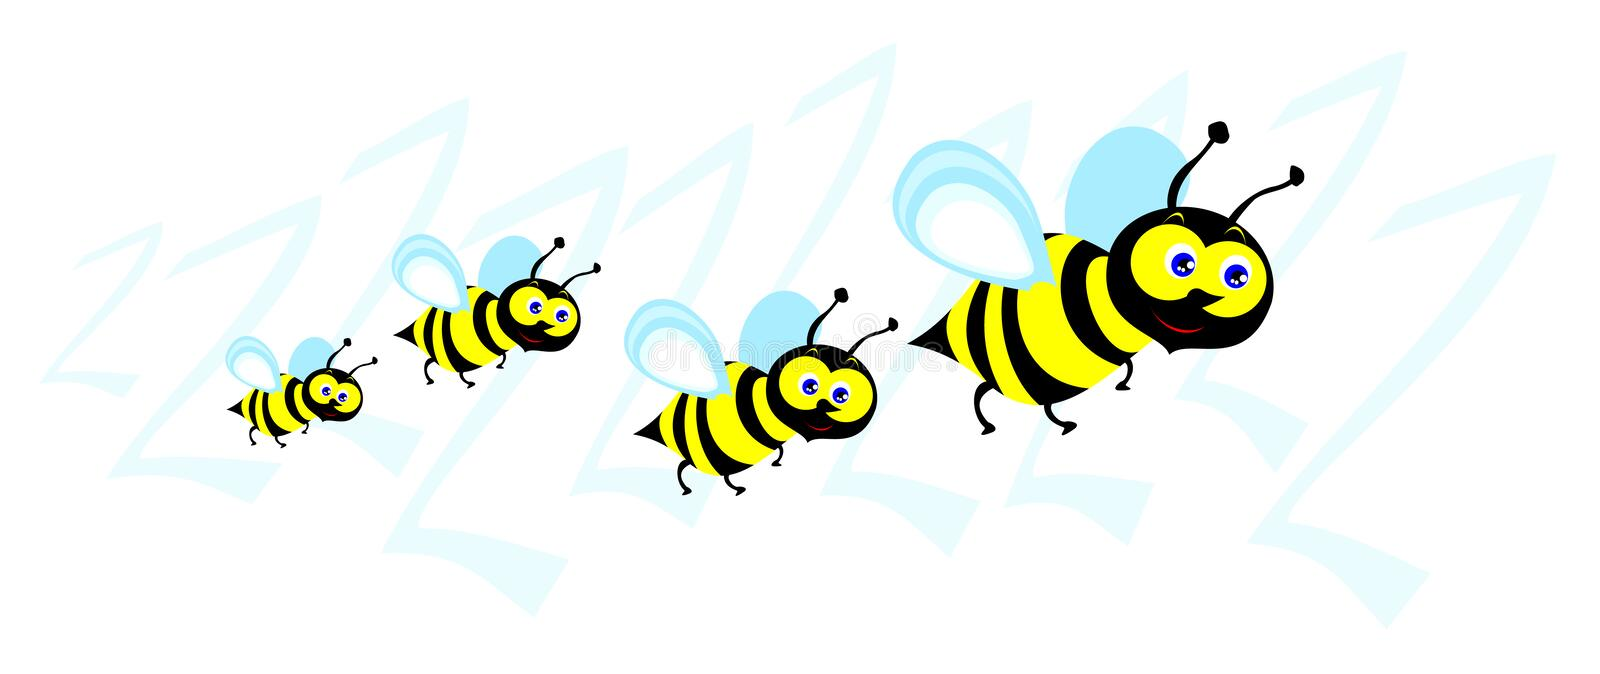 Swarm of bees. Funny illustration depicting a small swarm of bees in cartoon style stock illustration